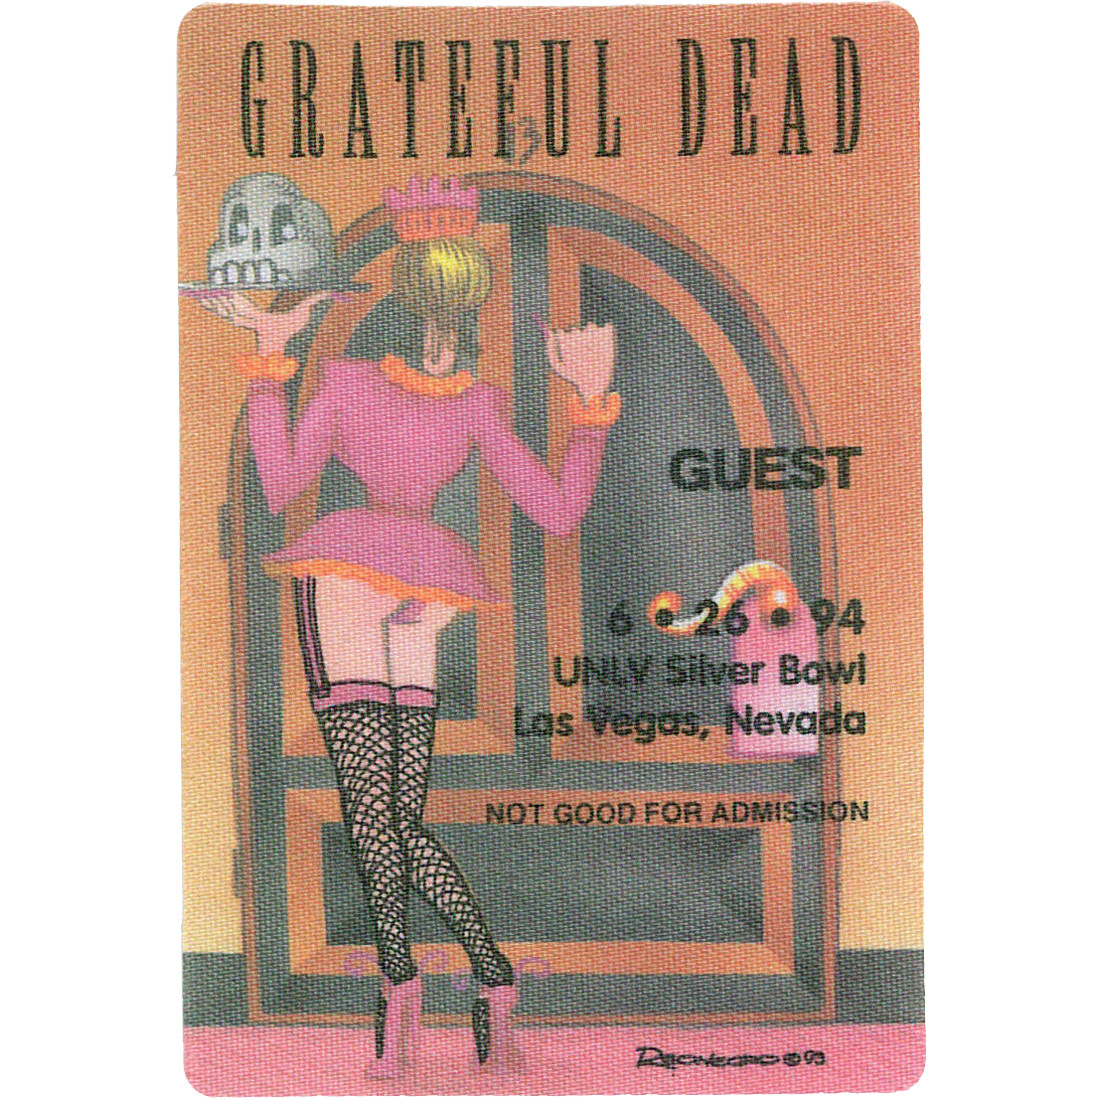 Grateful Dead 1994 06-26 Backstage Pass